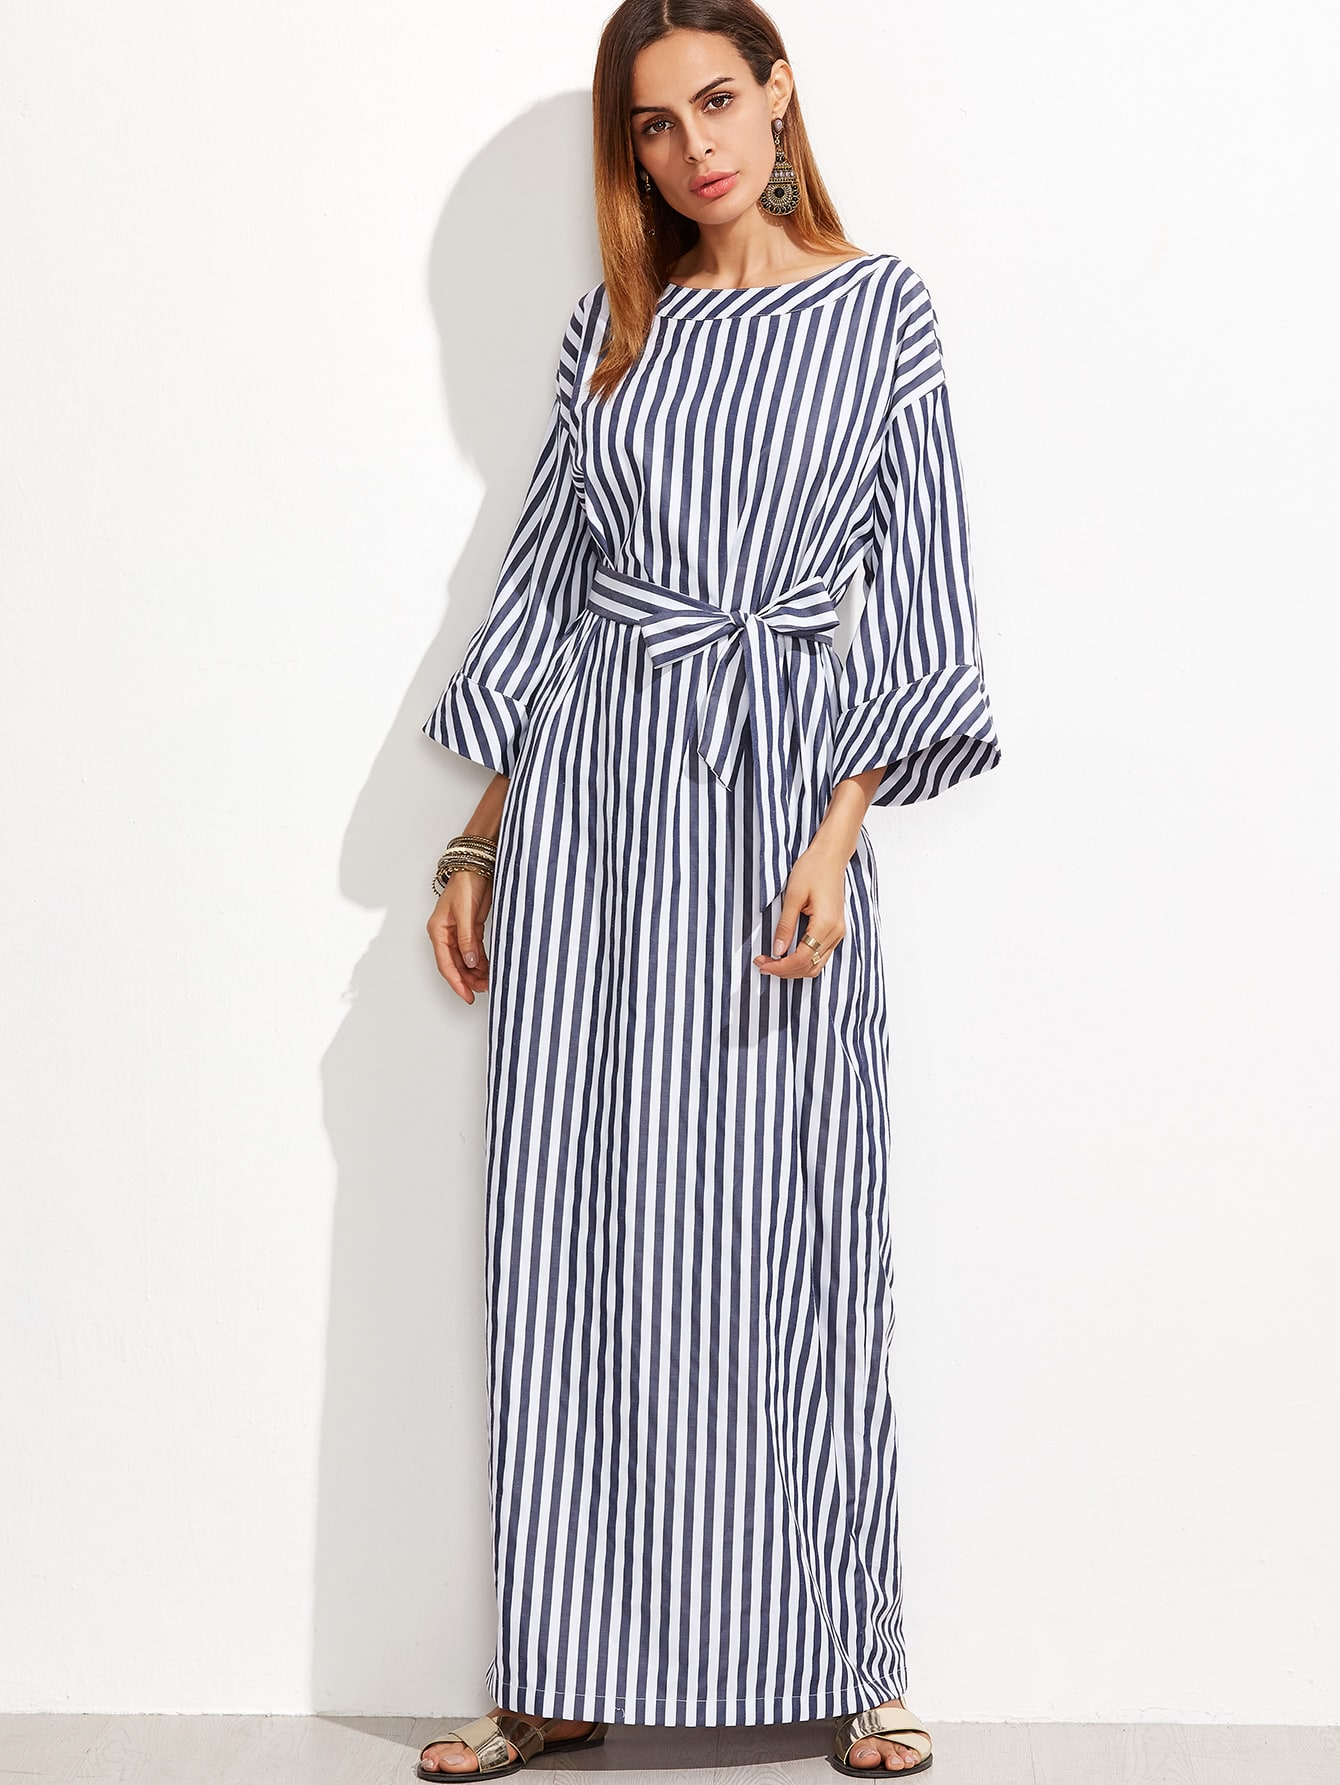 Navy And White Striped Self Belt Roll Cuff Maxi DressNavy And White Striped Self Belt Roll Cuff Maxi Dress<br><br>color: White<br>size: S,XS